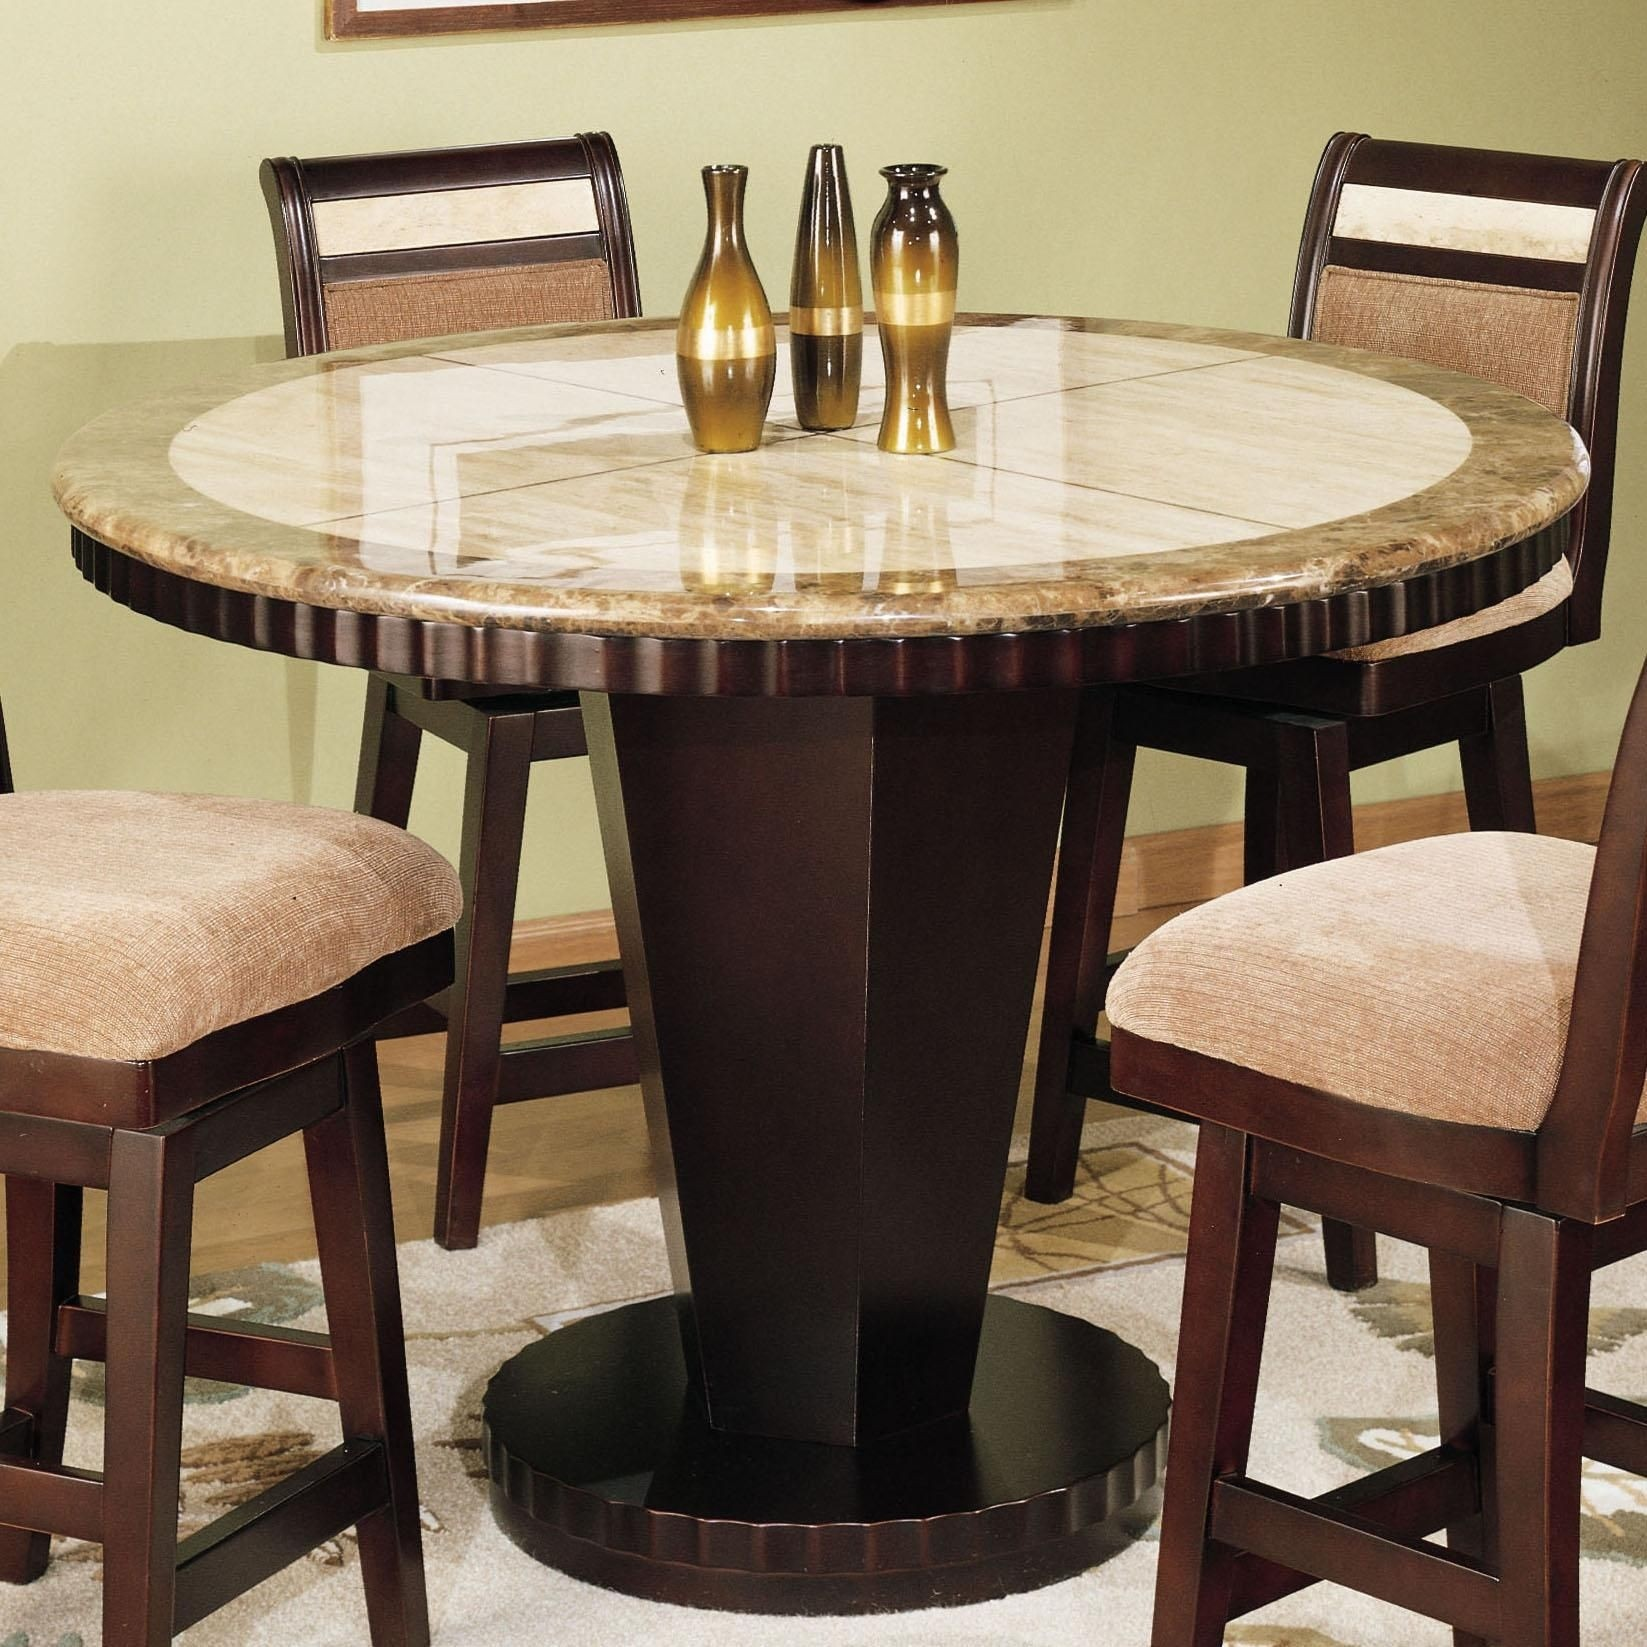 High top table for two : high top table set - pezcame.com